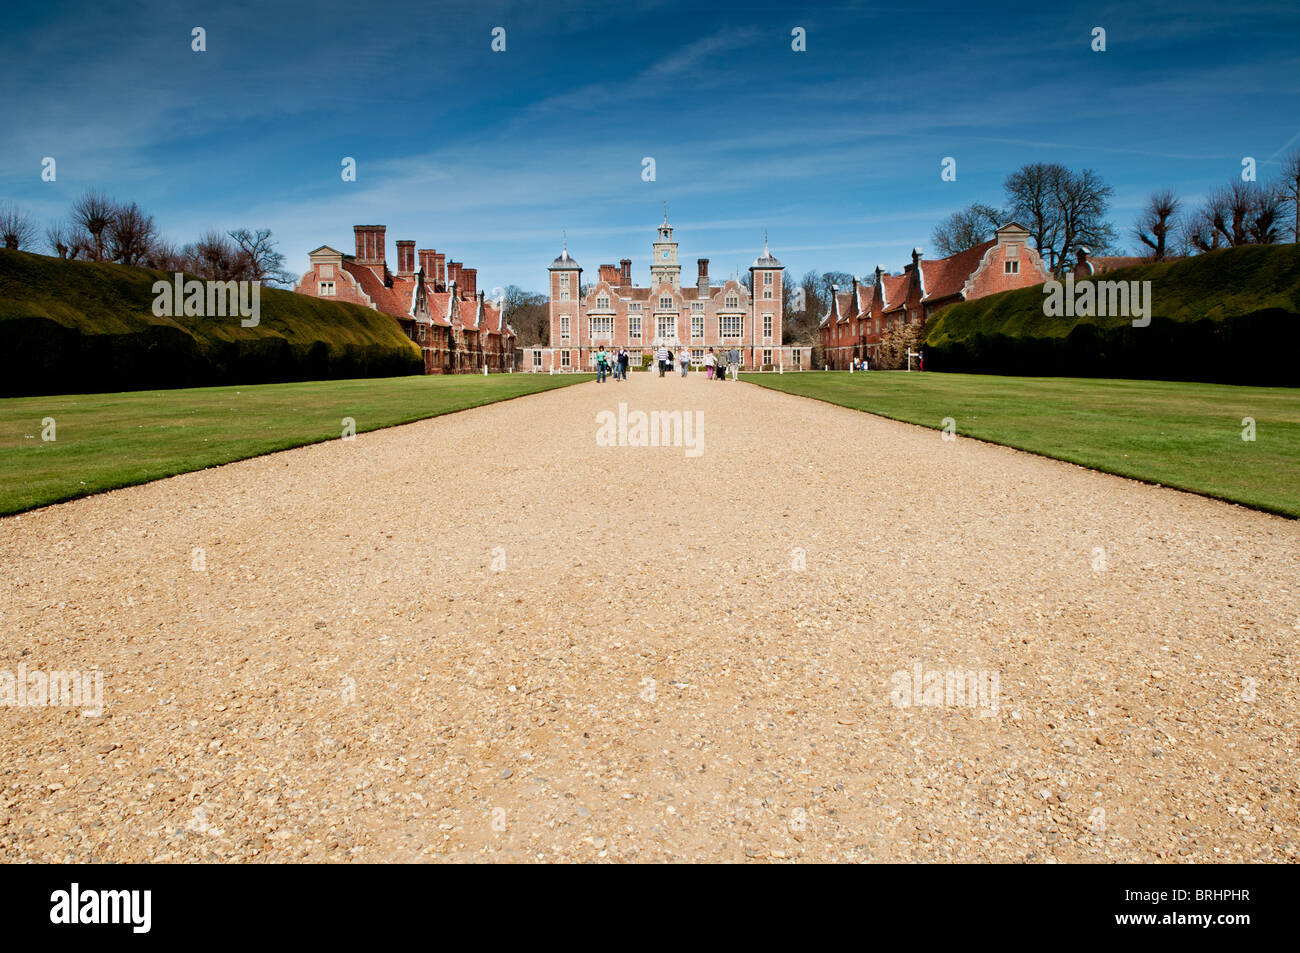 Landscape of Stately home with blue sky, green grass - Stock Image